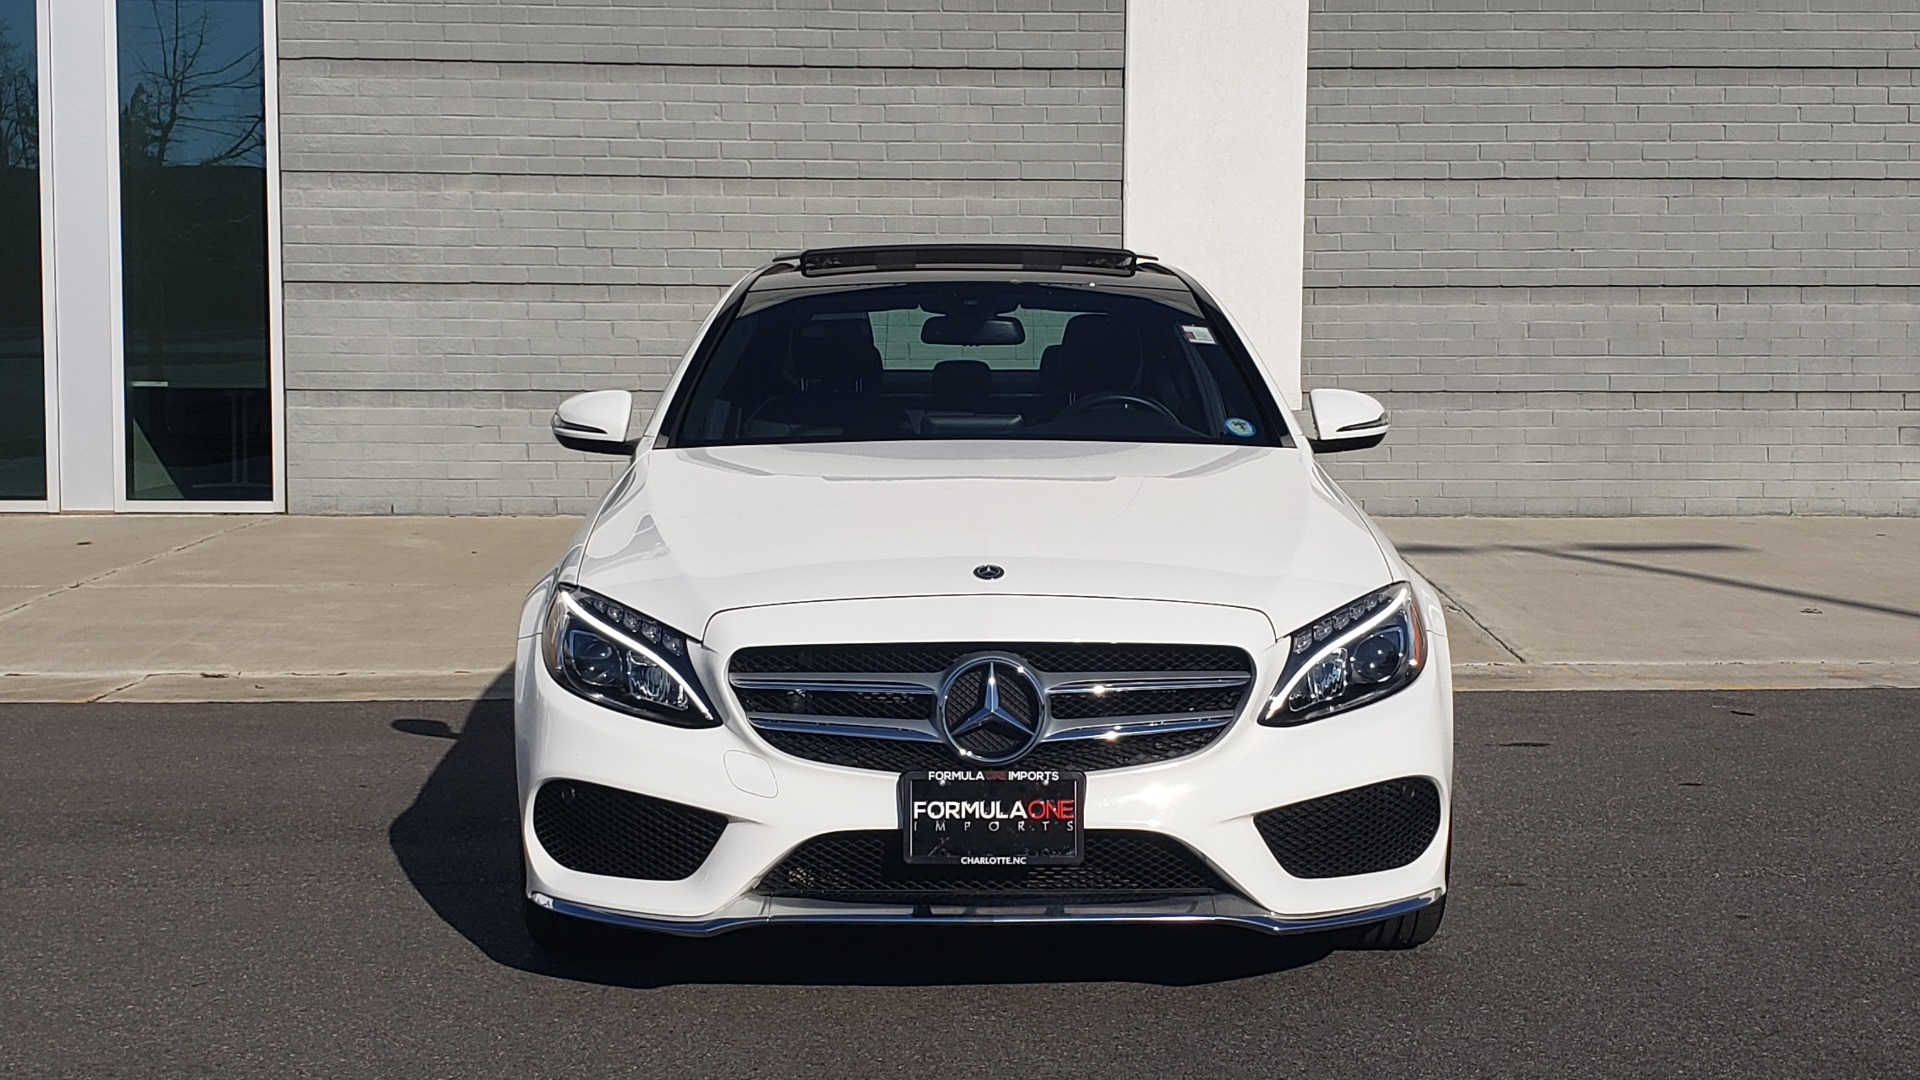 Used 2018 Mercedes-Benz C-Class C 300 PREMIUM / NAV / PANO-ROOF / AMG LINE / MULTIMEDIA for sale $28,235 at Formula Imports in Charlotte NC 28227 20